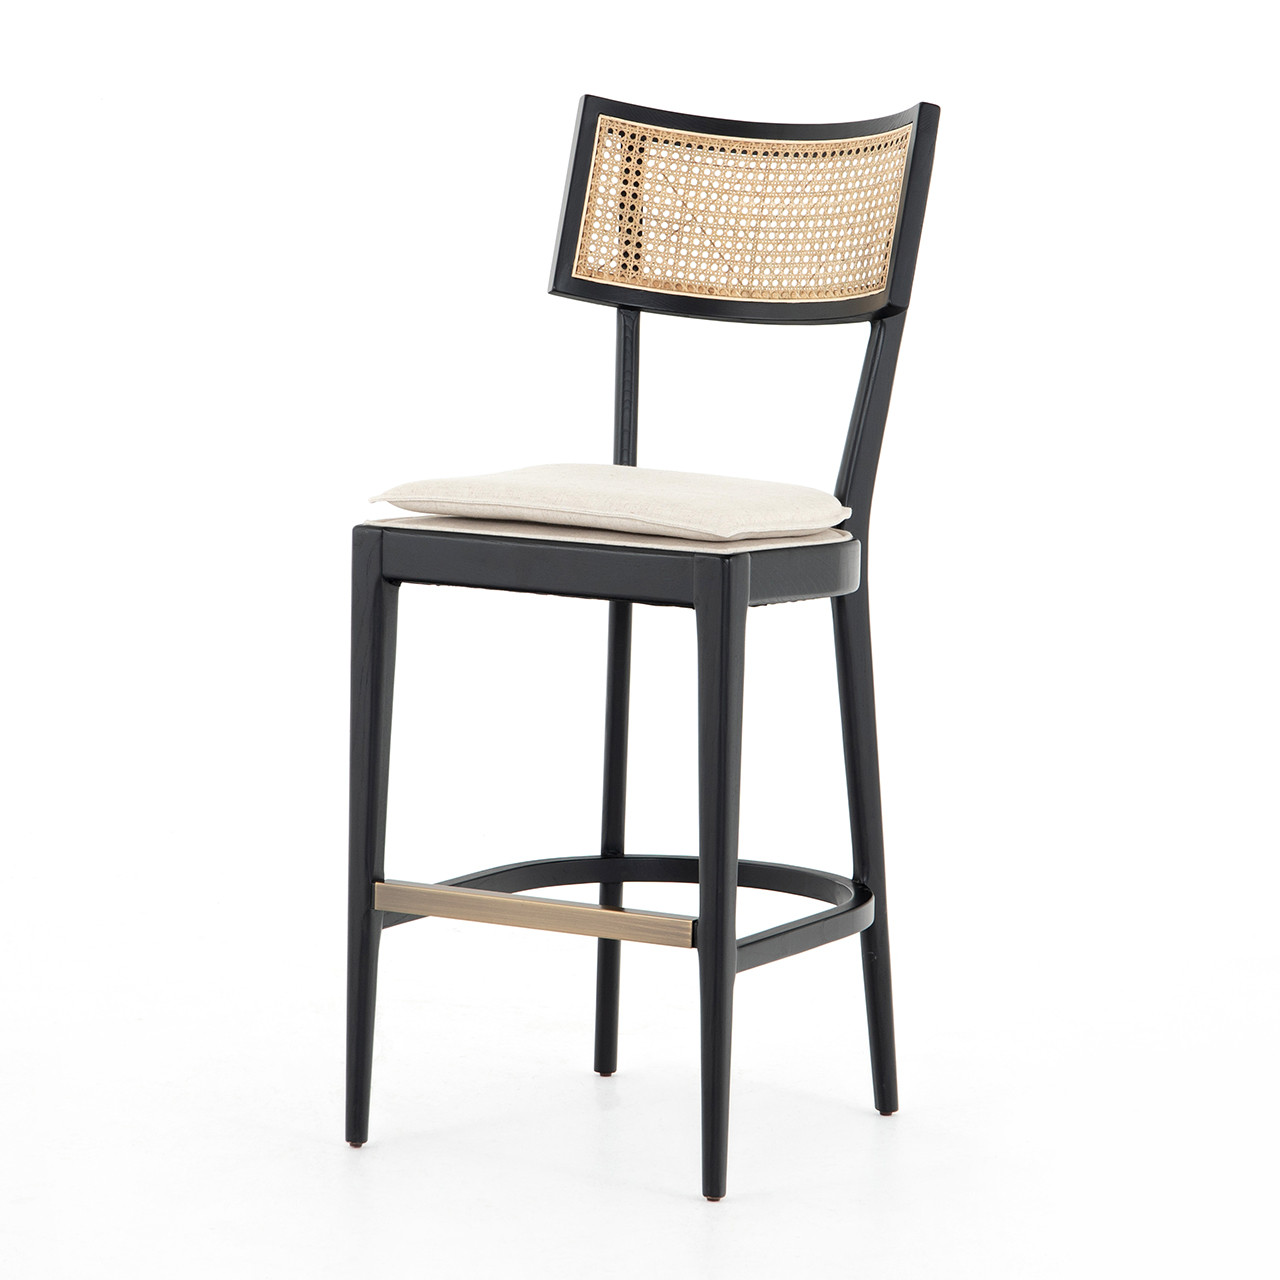 Britt Bar + Counter Stool